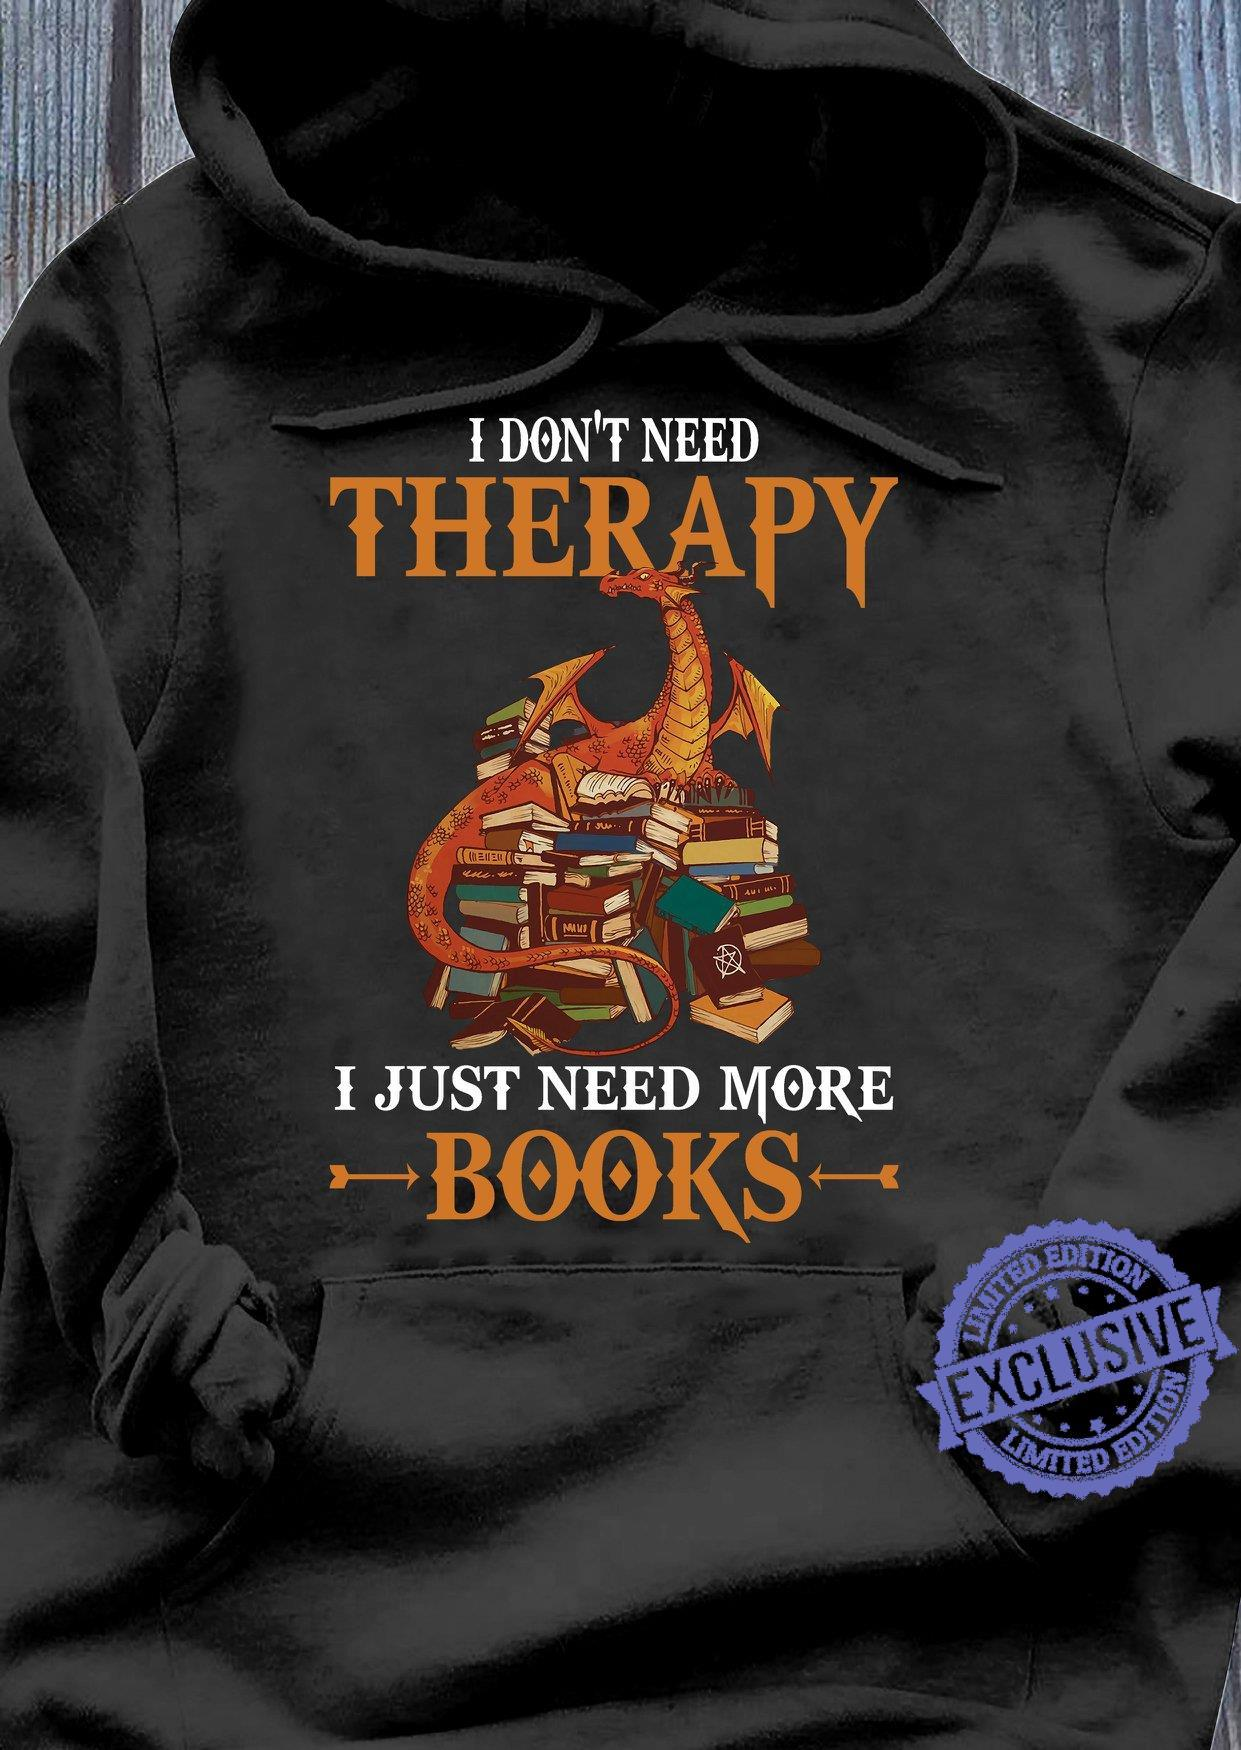 I don't need therapy i just need more books shirt